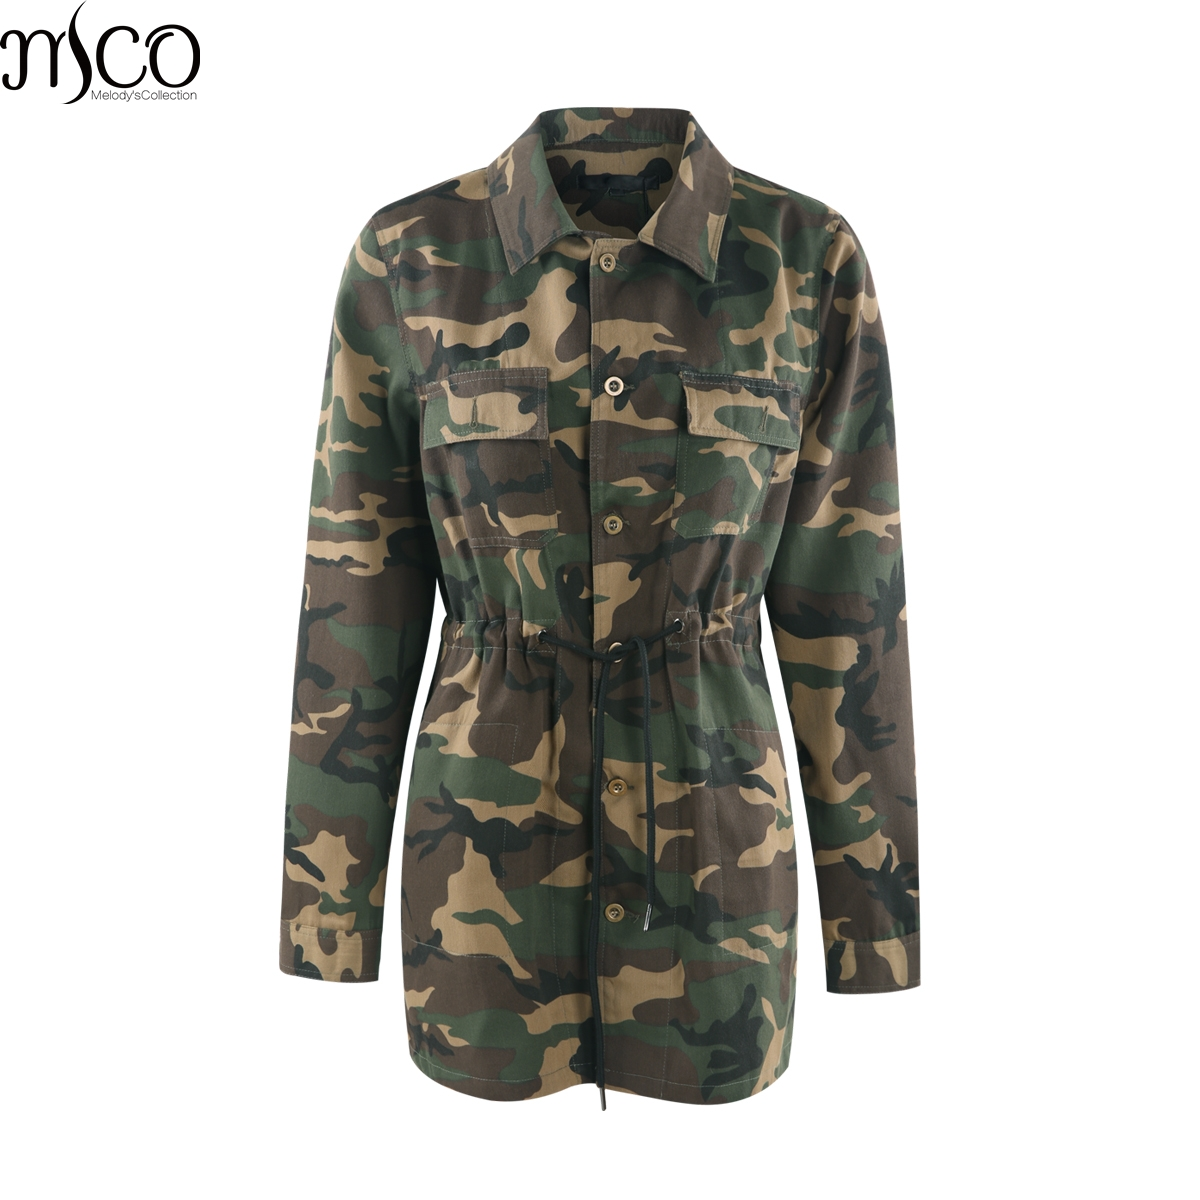 25ca4fcece0 MCO 2018 Camouflage Plus Size Women s Jacket Casual Oversized Military  Female Long Outwear Basic Big Women Jackets 5xl 6xl 7xl